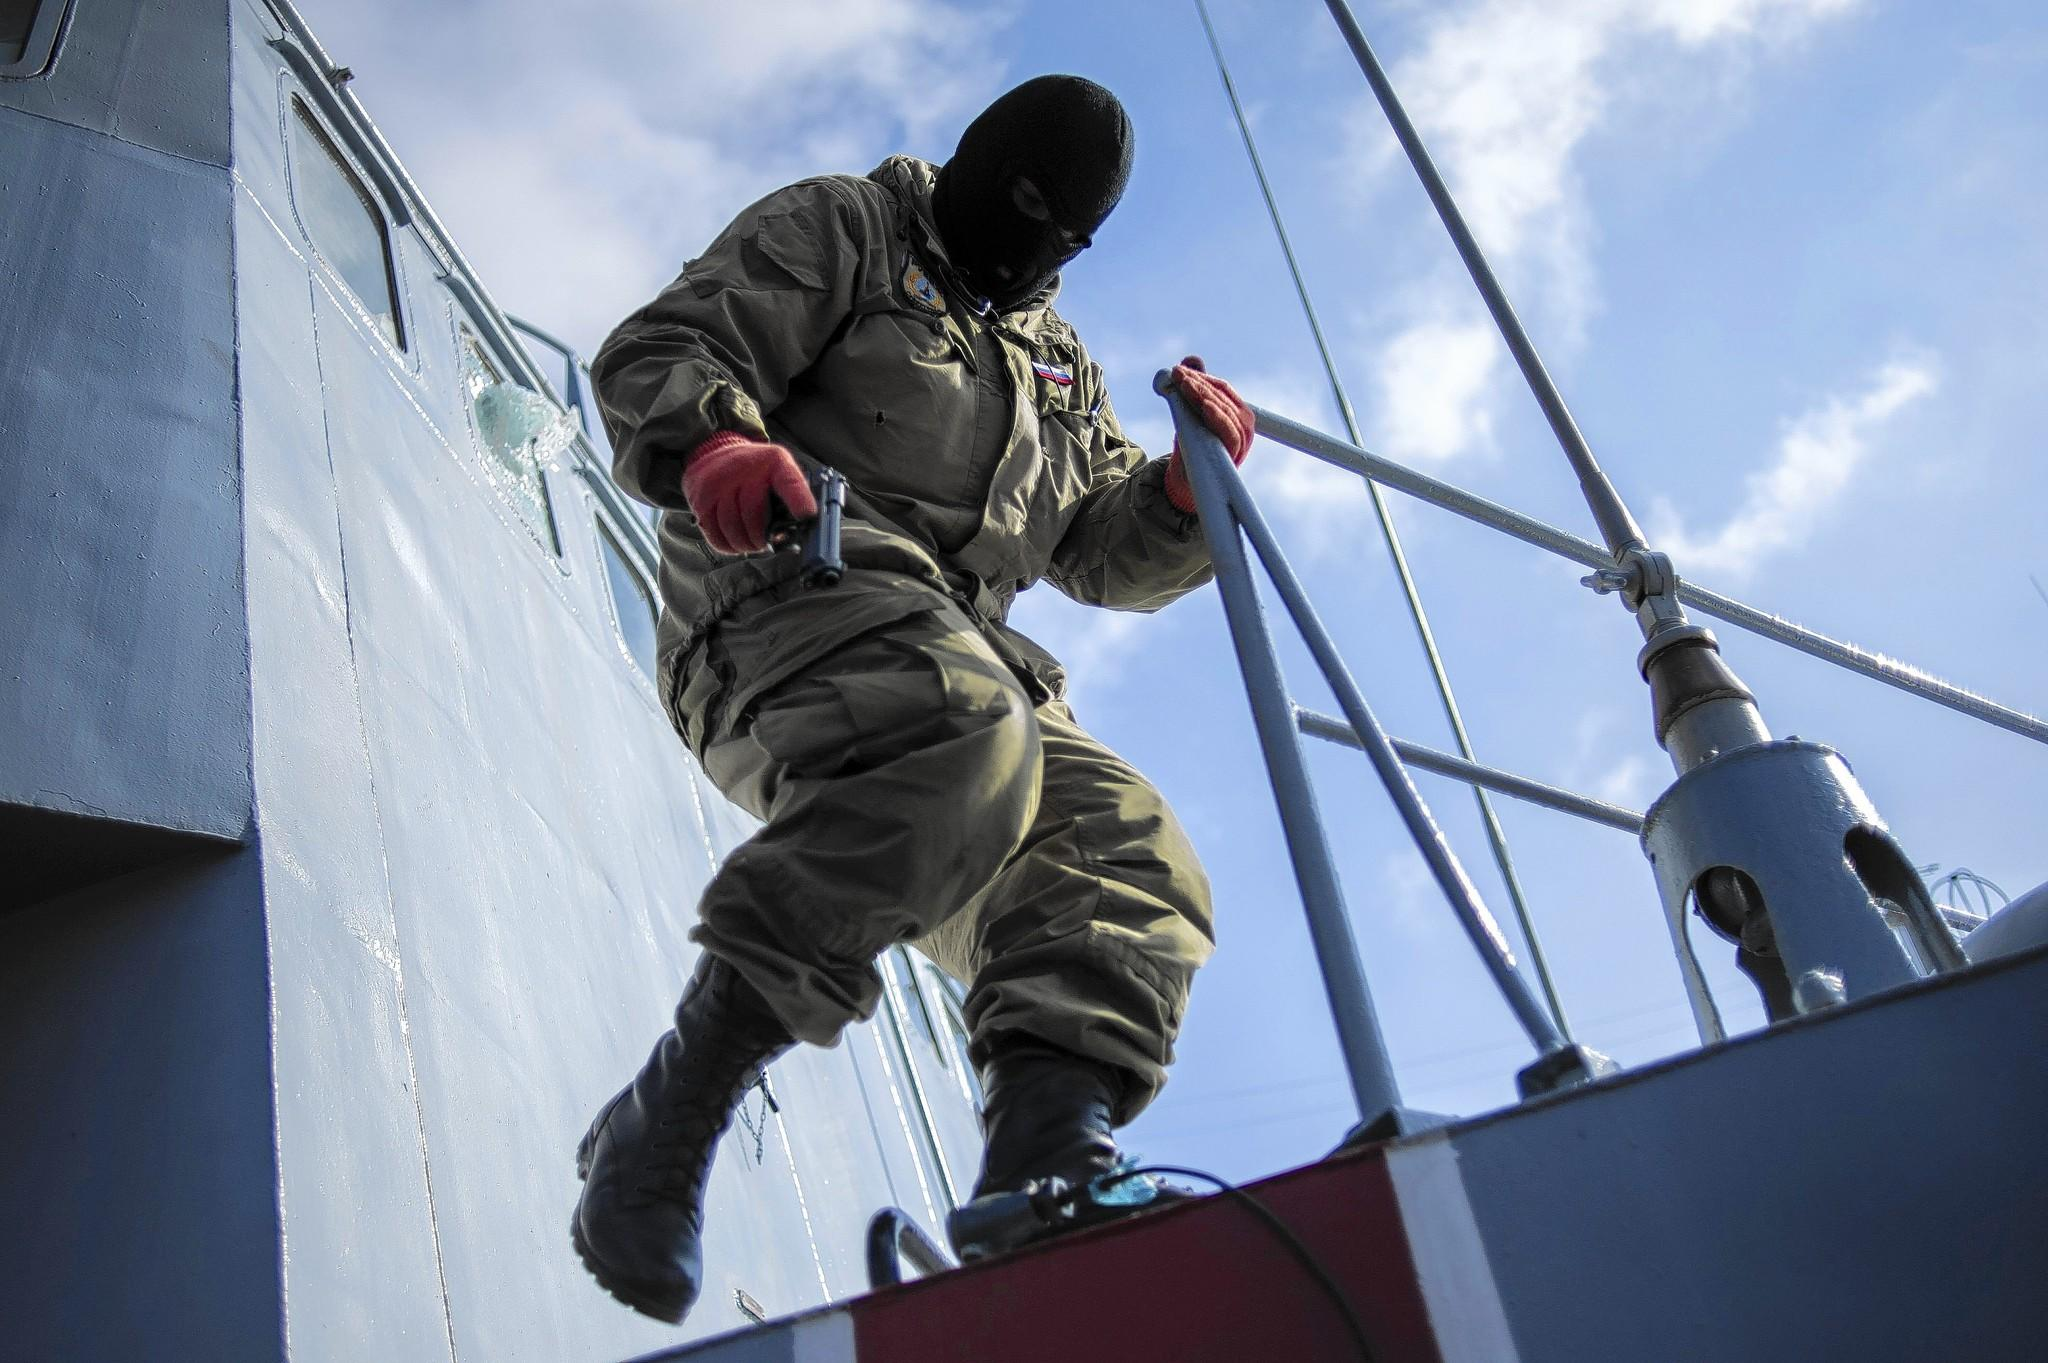 A member of a pro-Russia self-defense force holds a gun during the seizure of a Ukrainian warship in Sevastopol, Crimea.